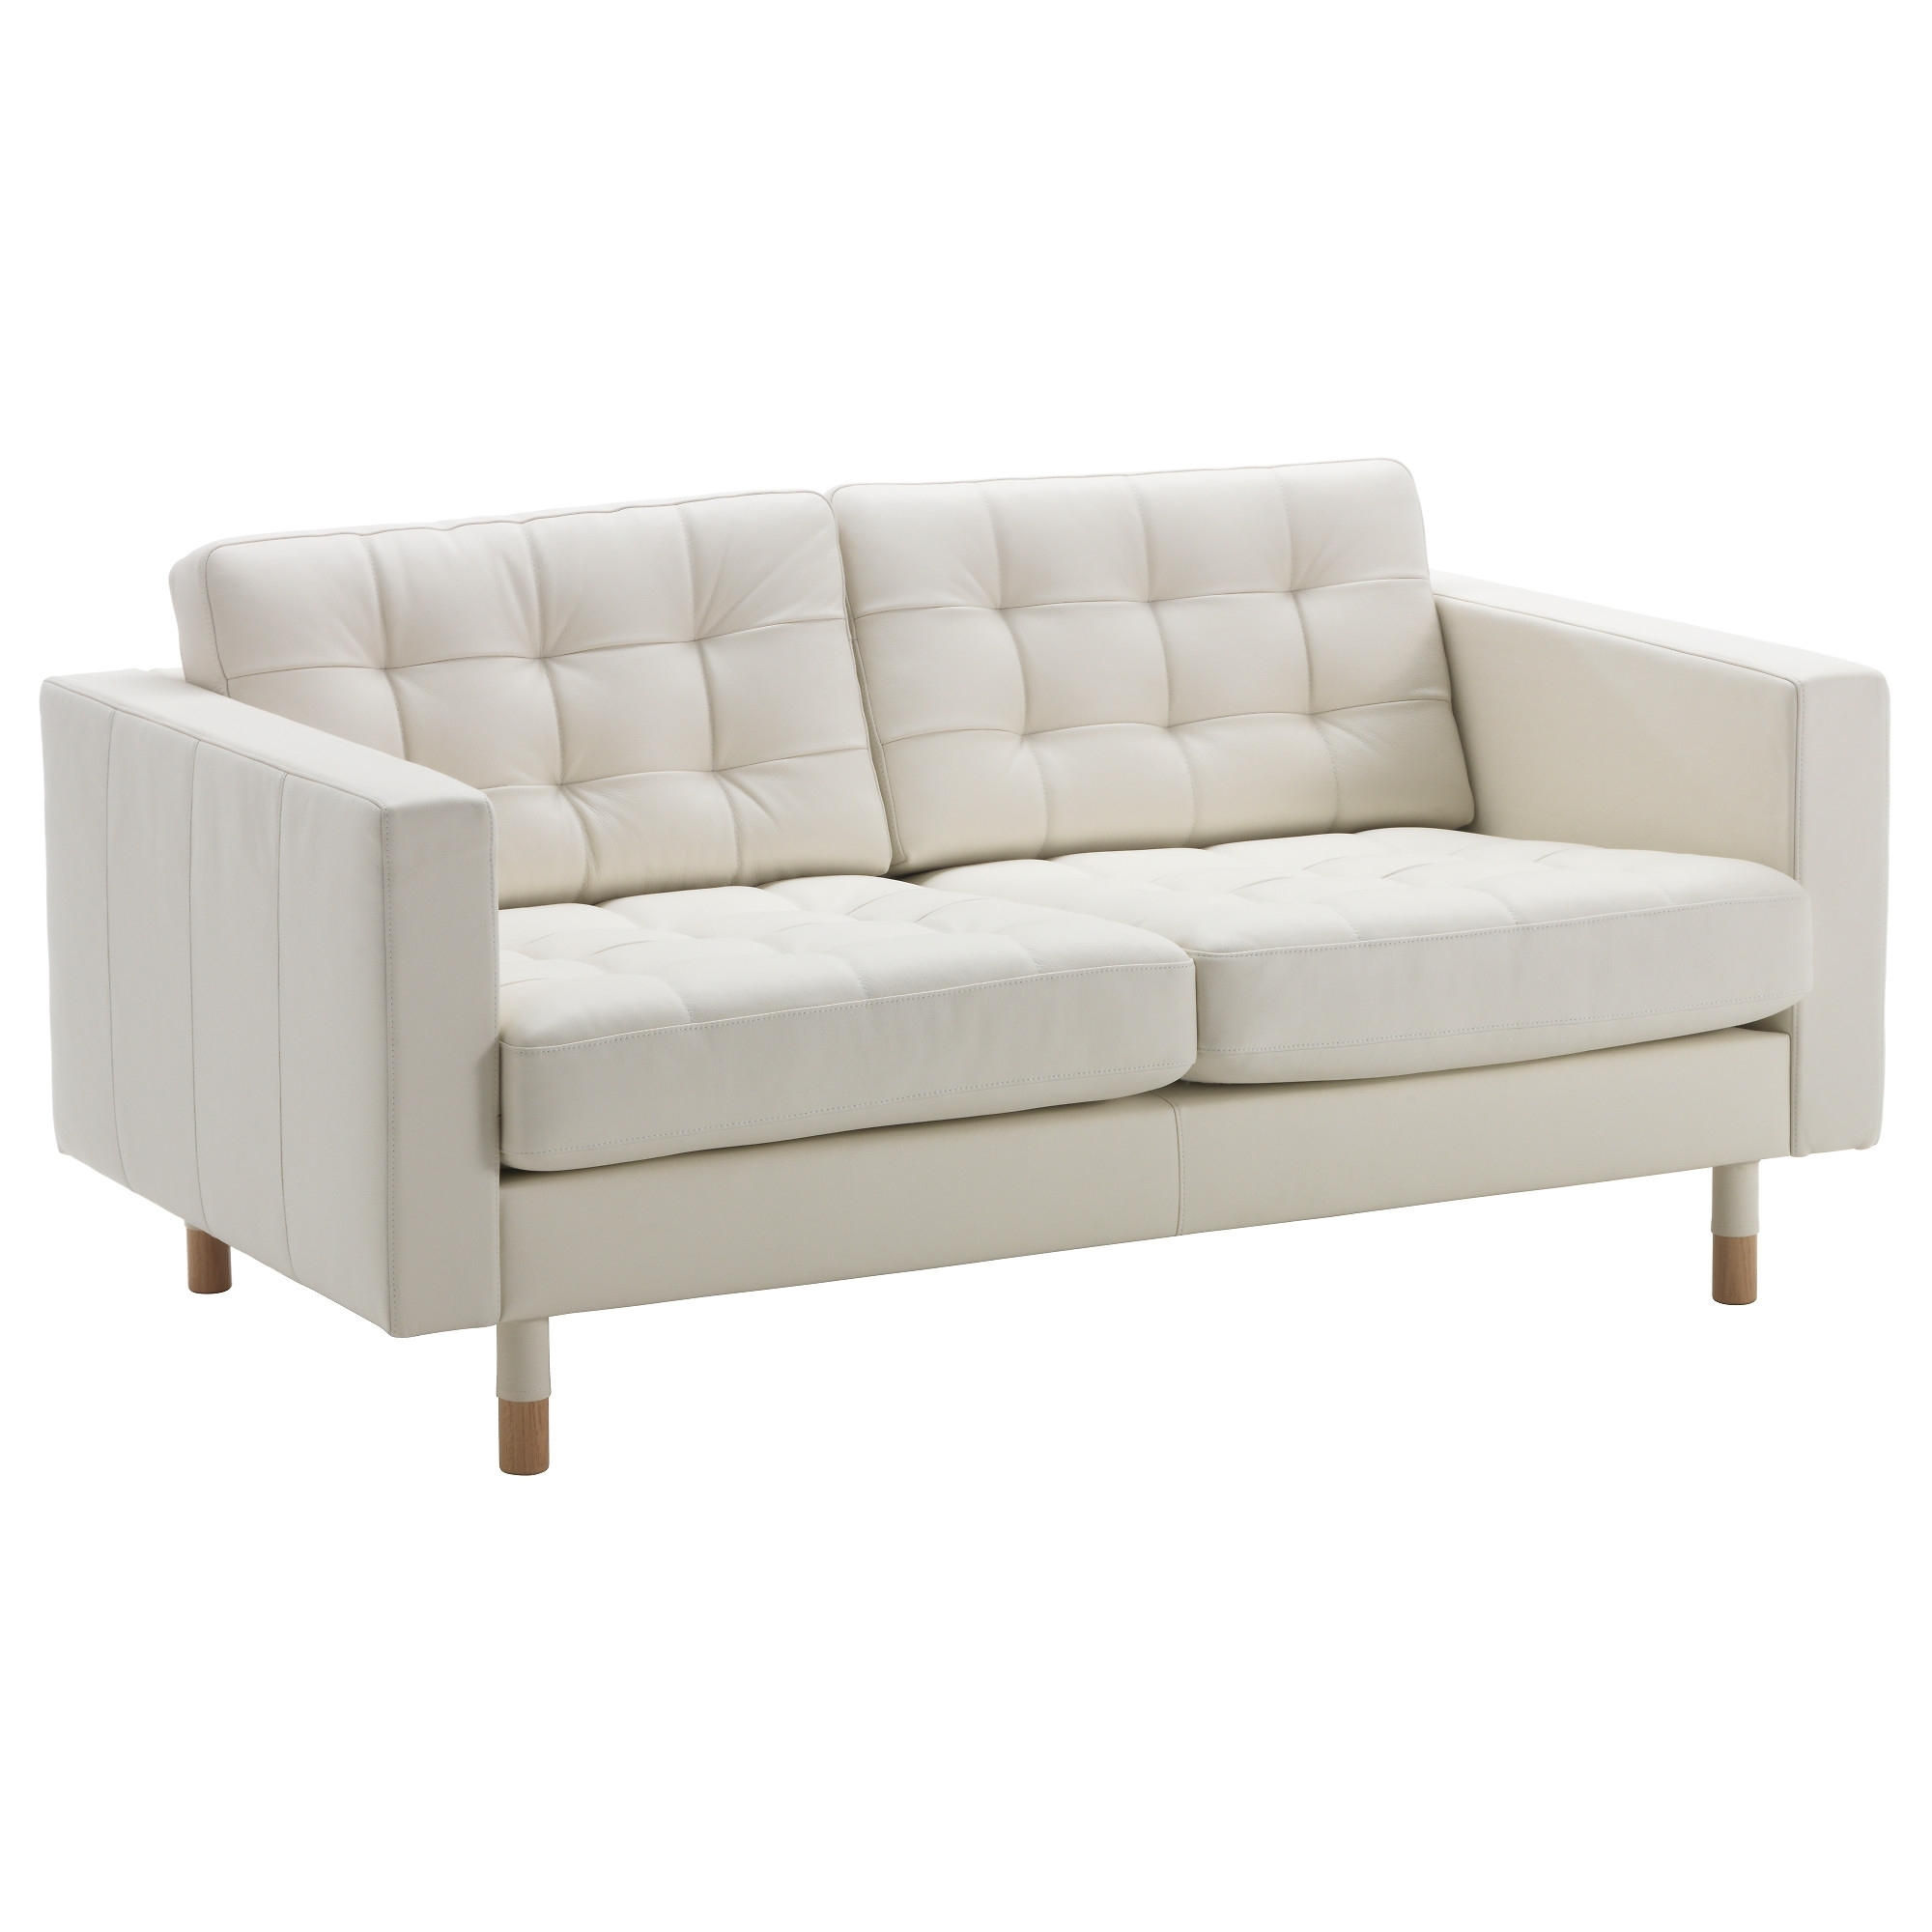 Favorite Ikea Small Sofas Intended For Landskrona Loveseat – Grann/bomstad White, Wood – Ikea (View 3 of 20)